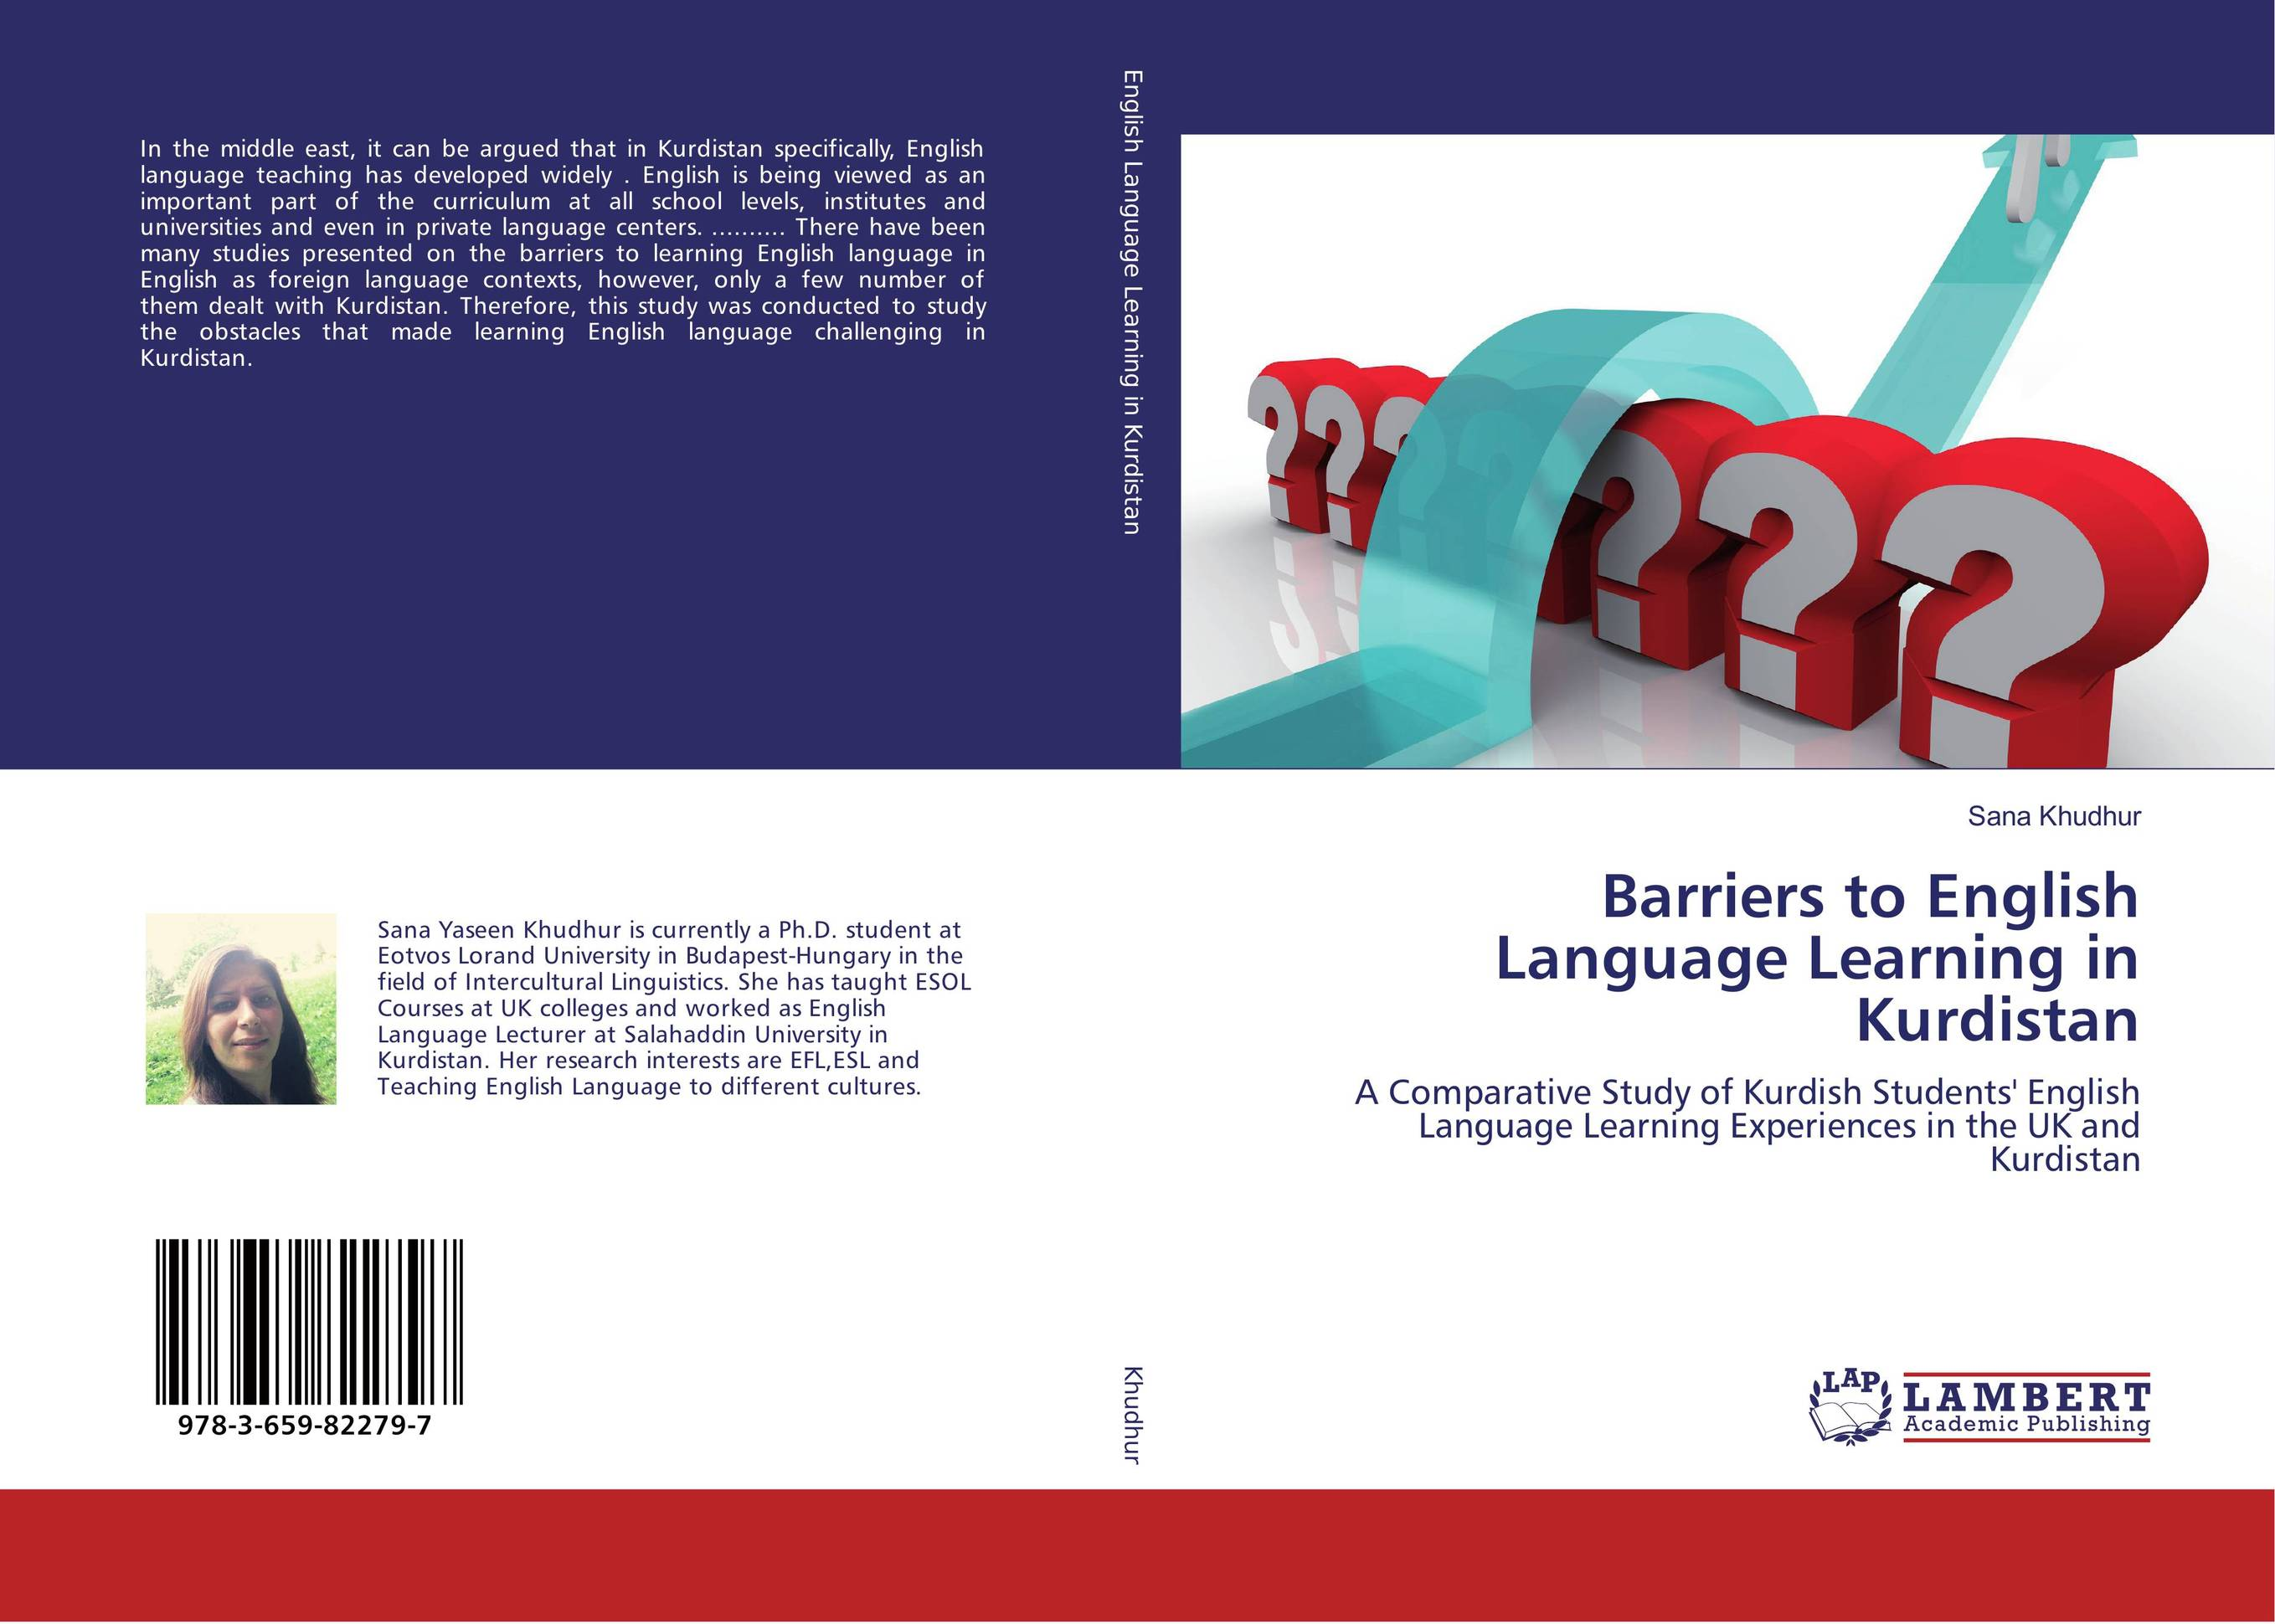 Barriers to English Language Learning in Kurdistan learner autonomy and web based language learning wbll